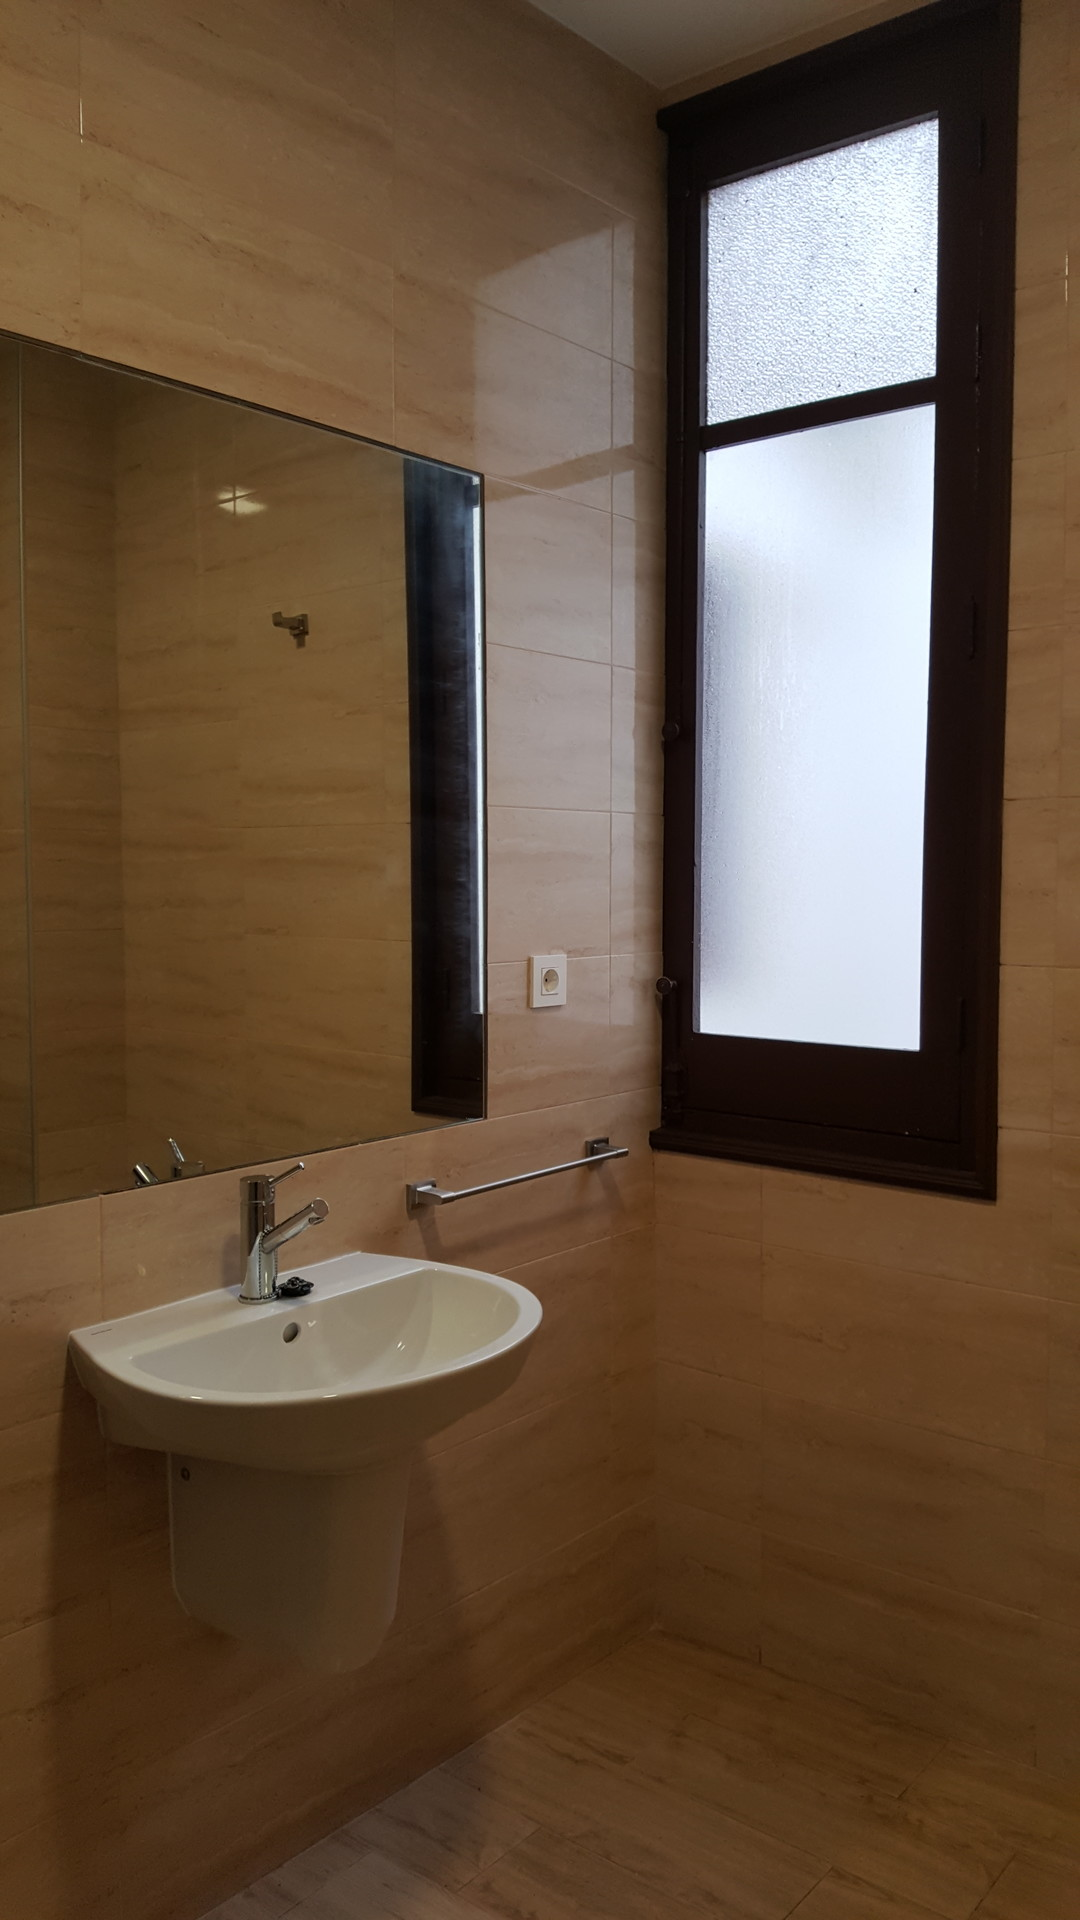 Lovely single Room at Centro (Av de la Constitucion -  Room 126)